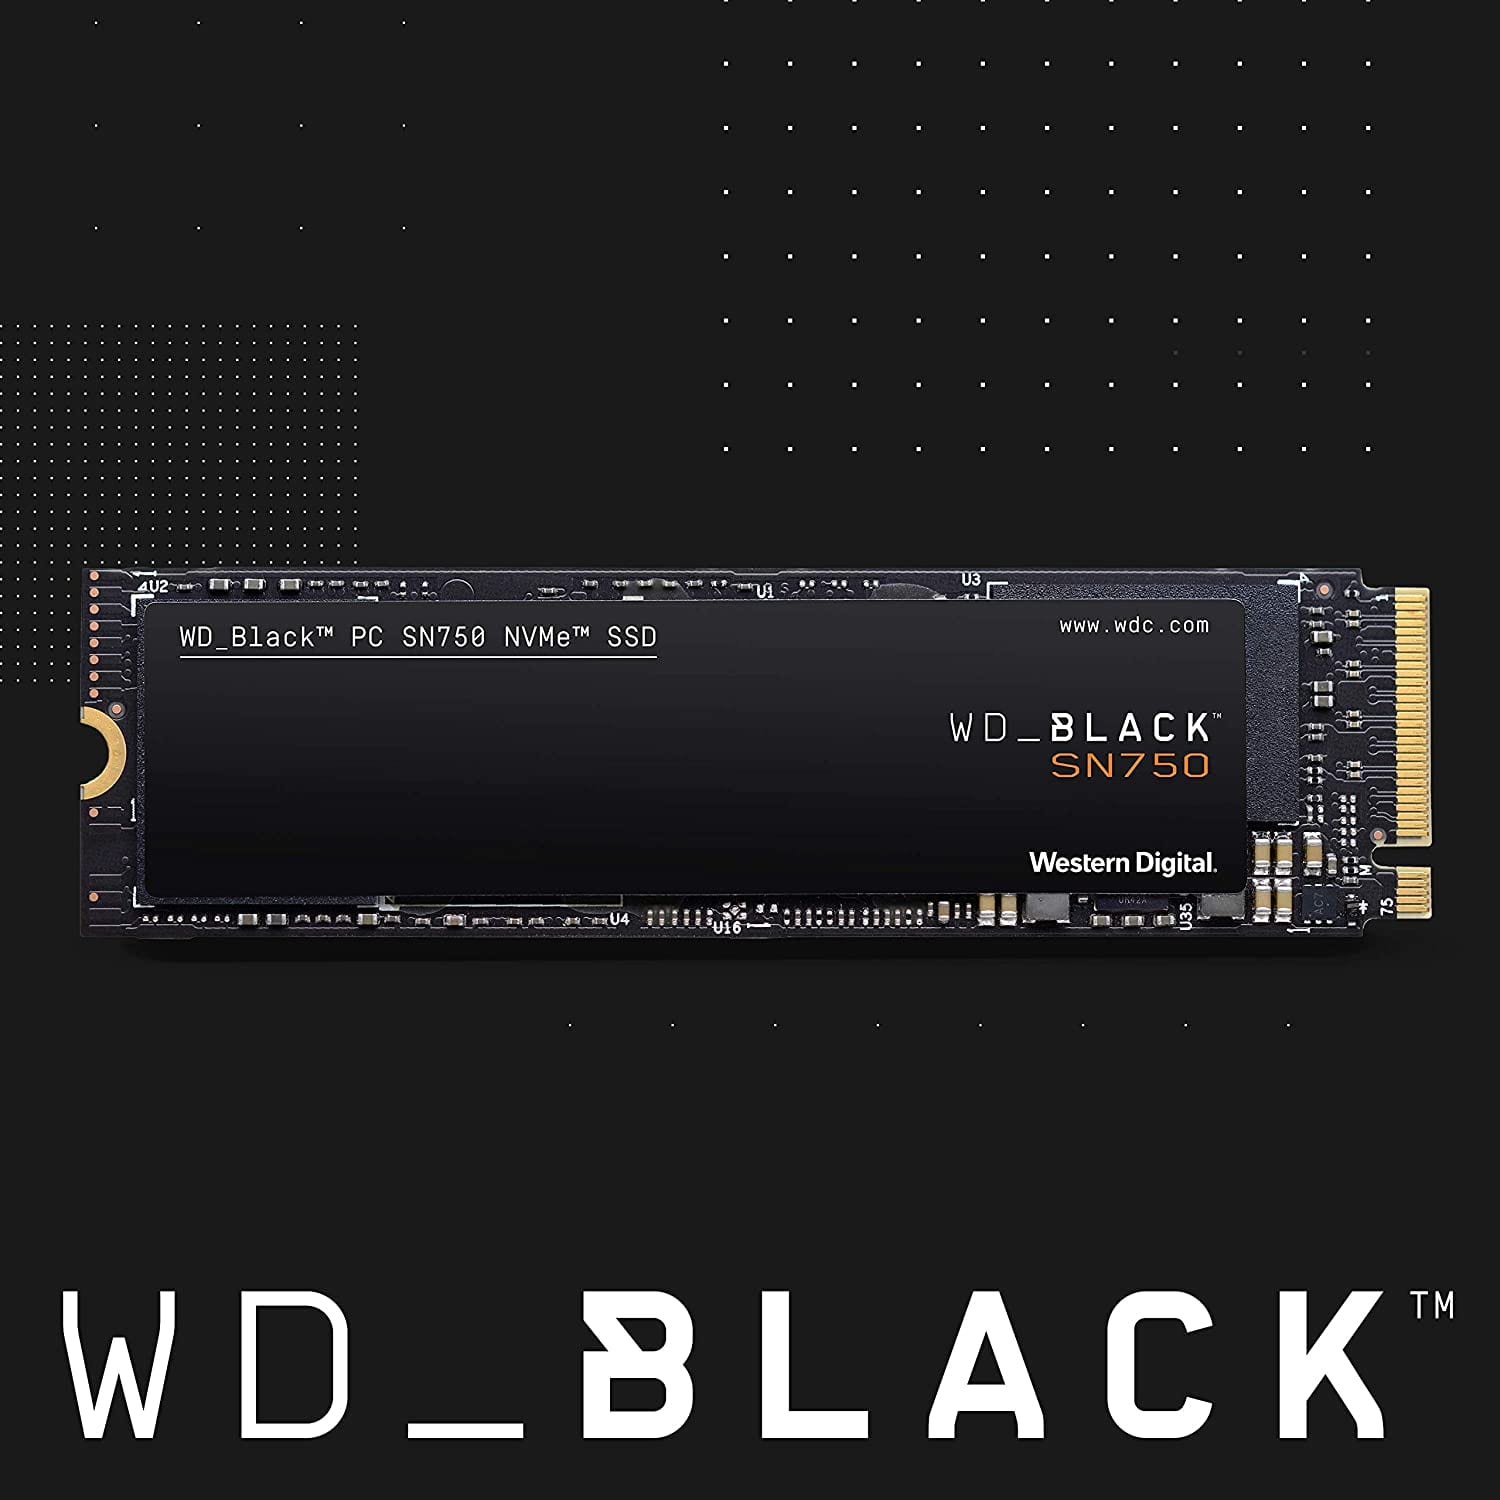 WD Black SN750 2TB NVMe Internal Gaming SSD - $309.99 @ Amazon